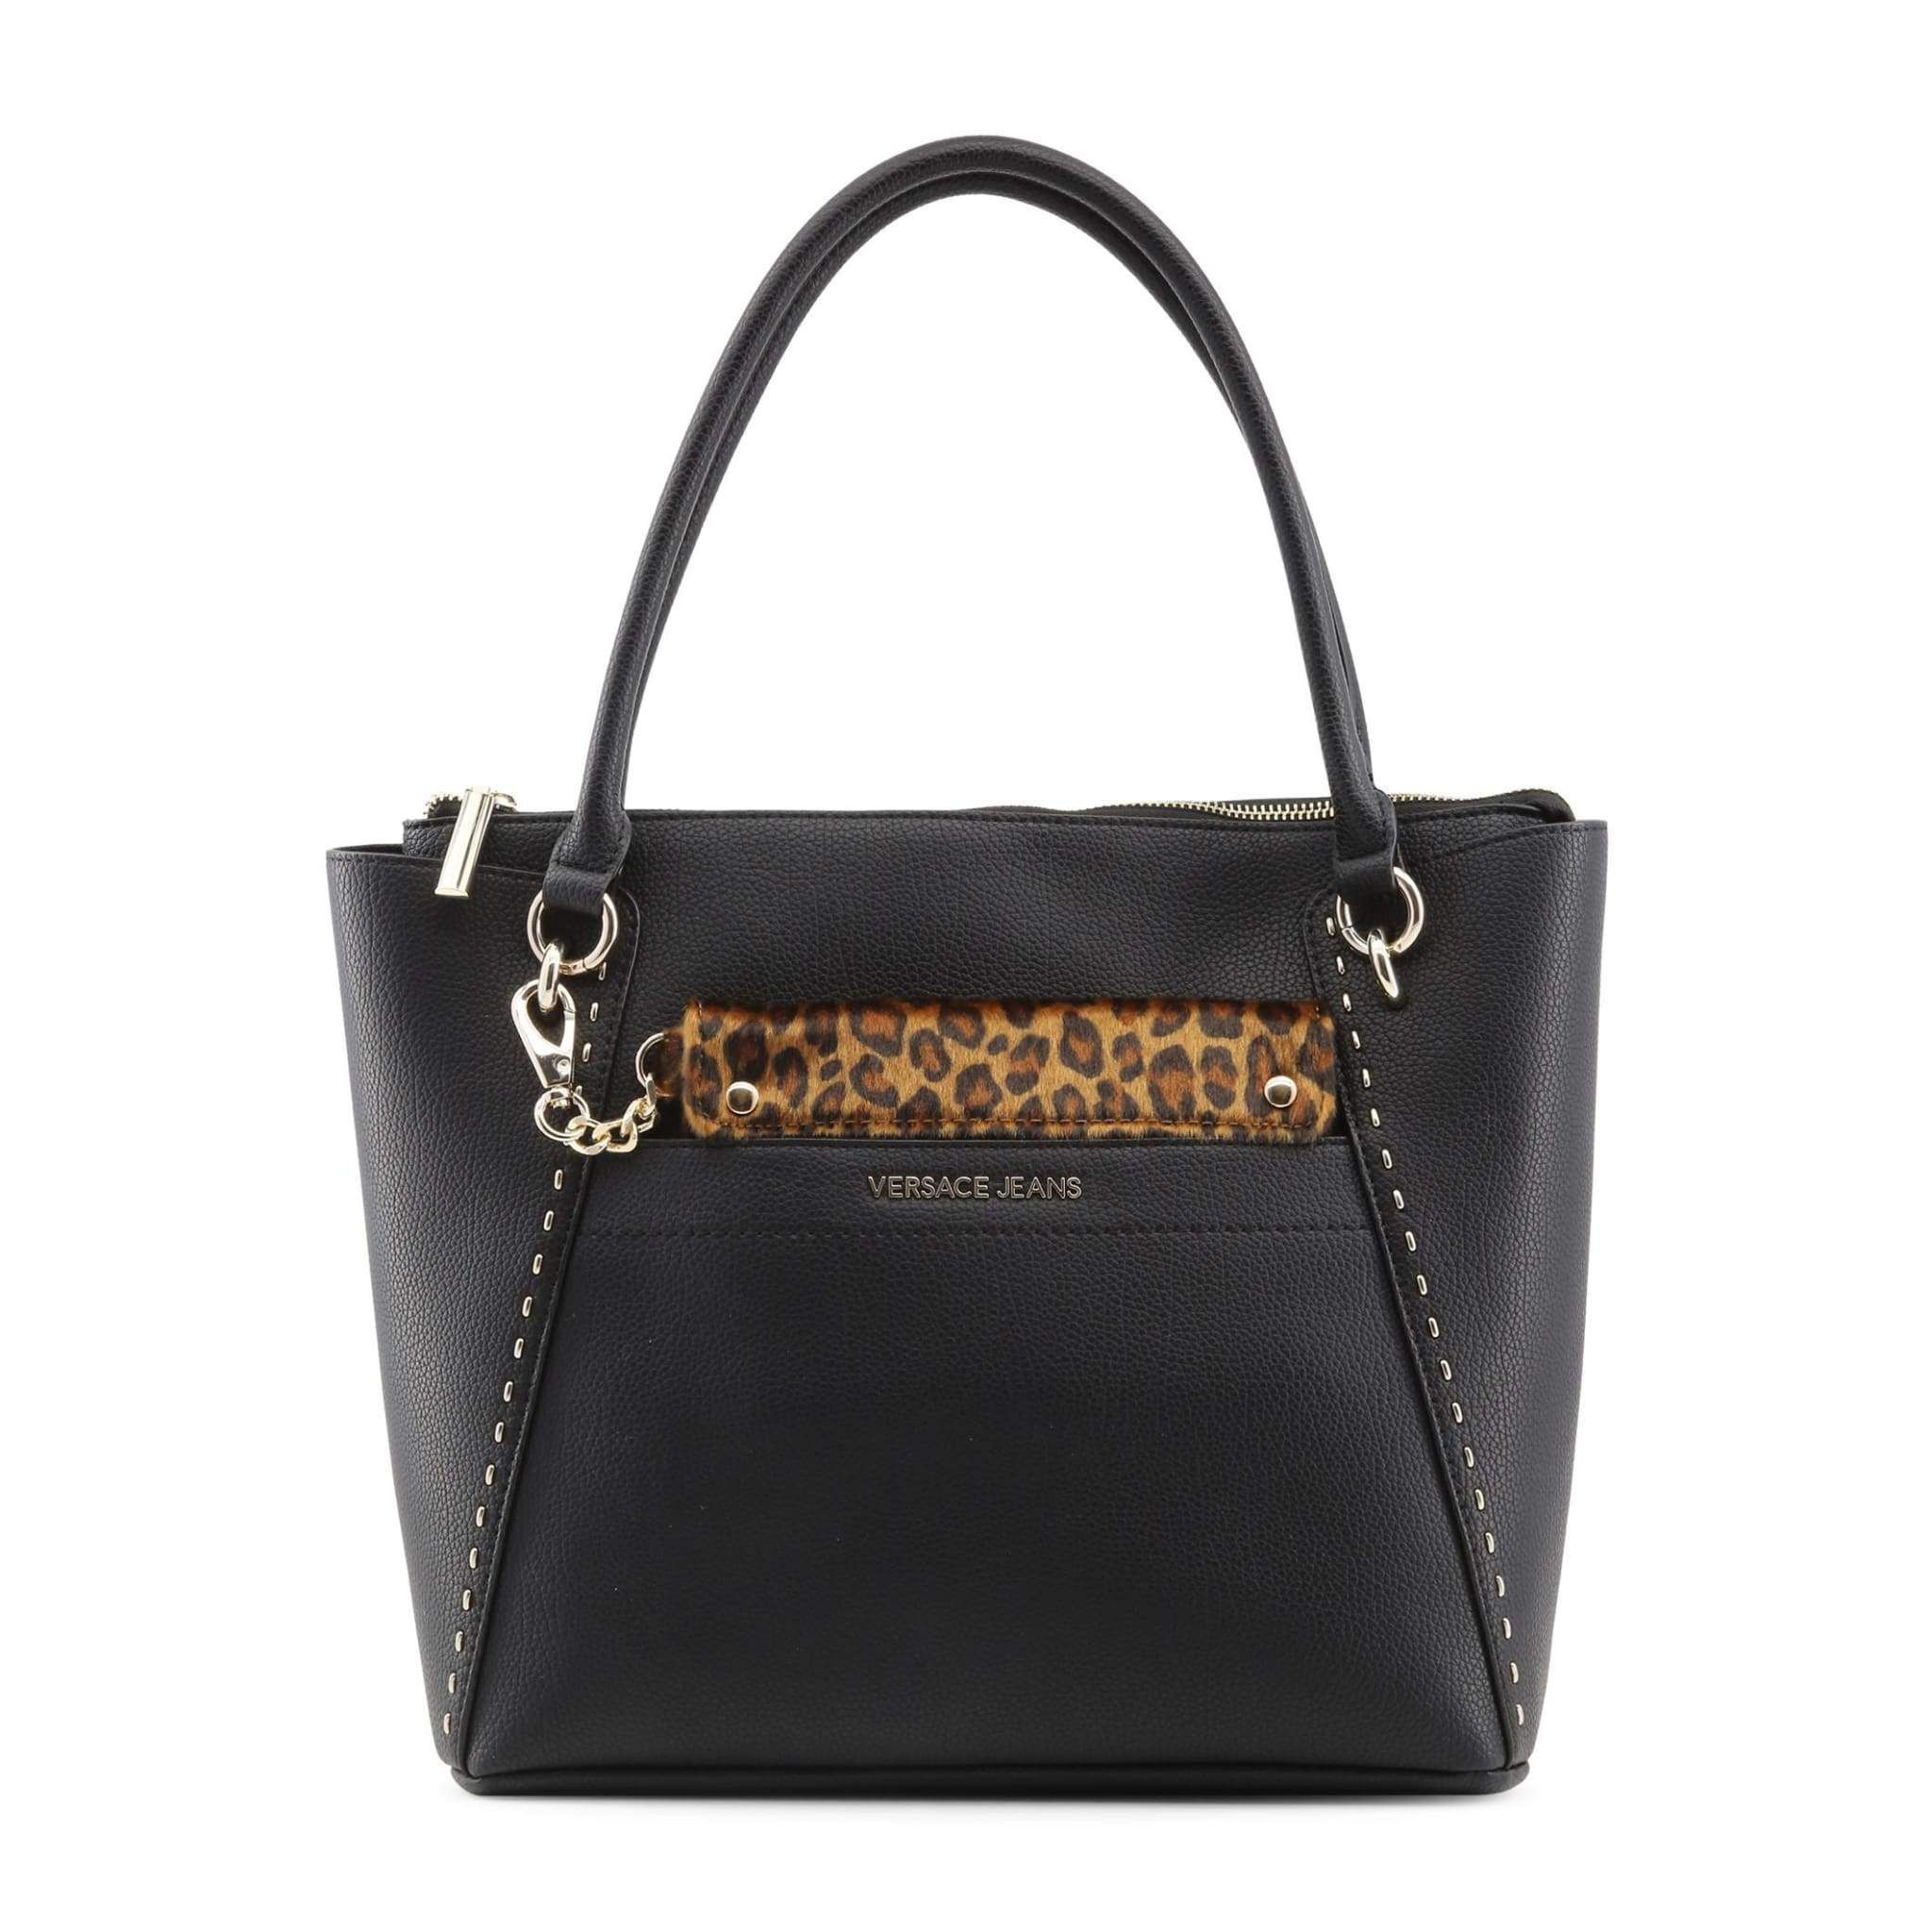 Absolutely Stunning Versace Jeans Women Black Shoulder bags in 2018 ... d4e3bde4469a9